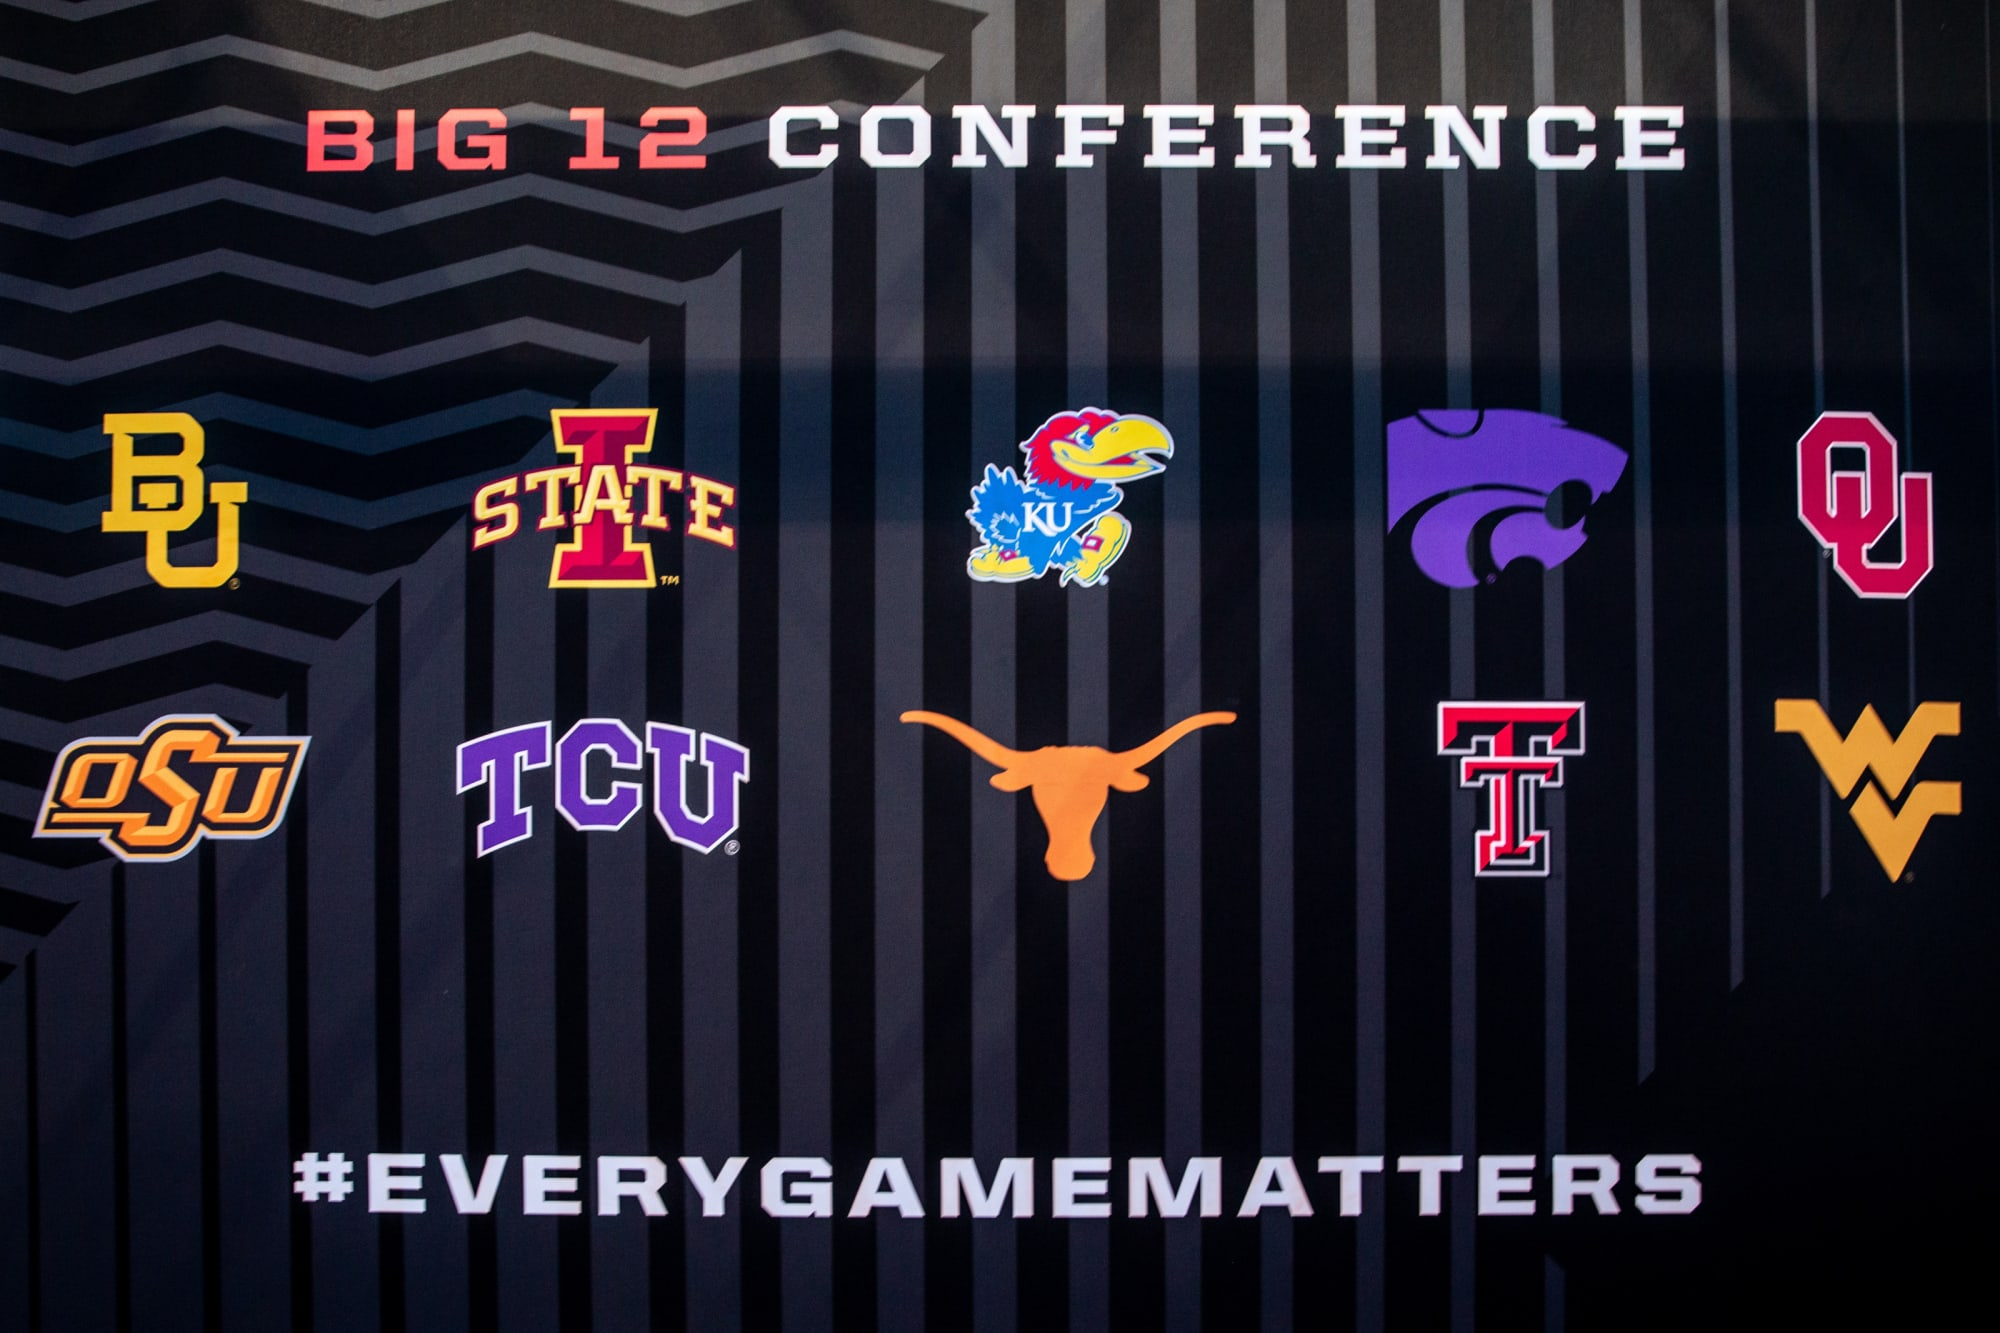 Texas Football: The dire amount that the Big 12 is about to lose financially